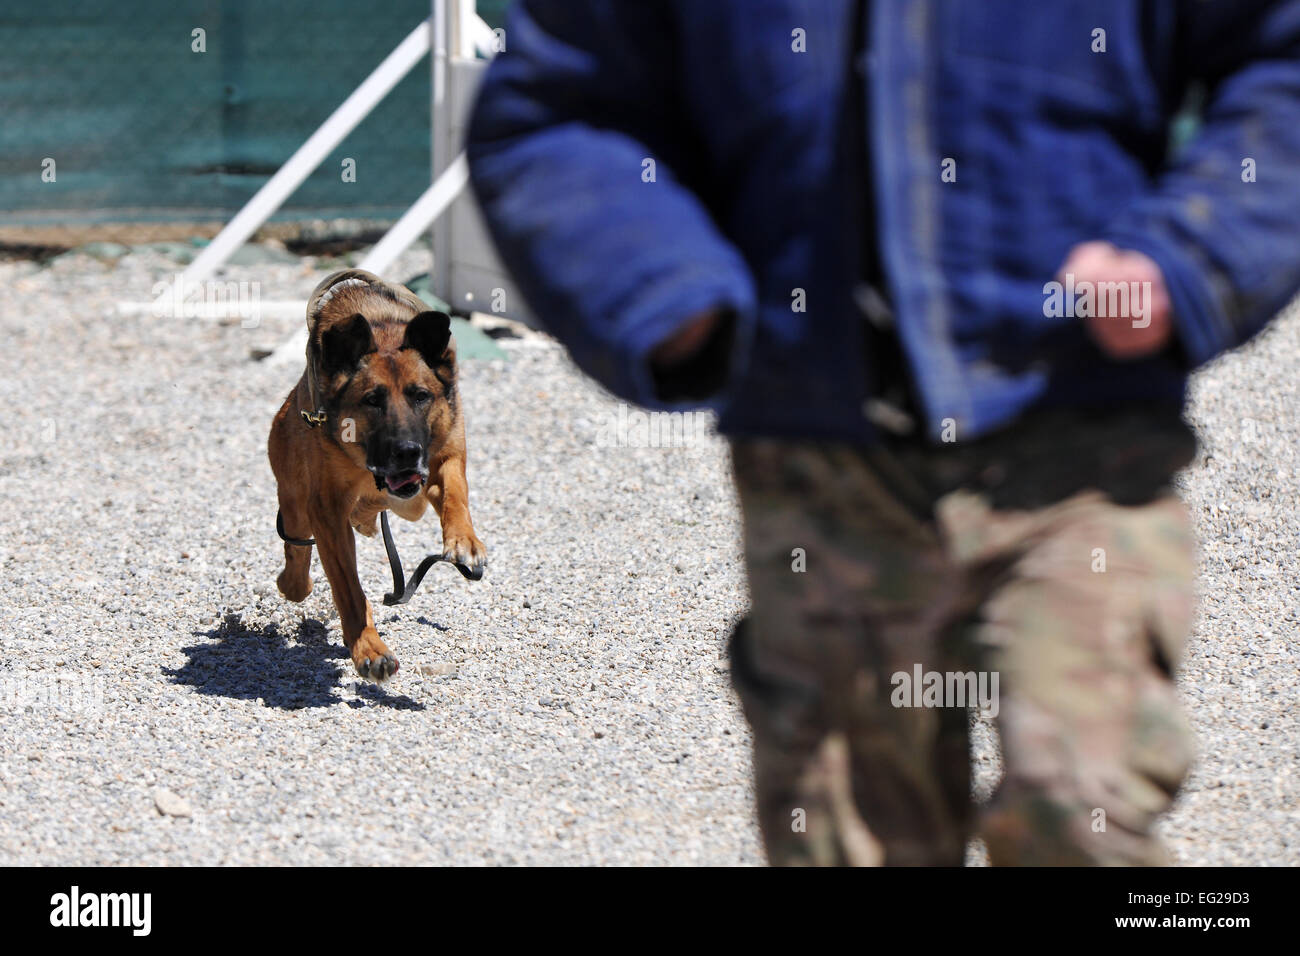 Senior Master Sgt. Edward Keenan, 455th Expeditionary Security Forces Group operations superintendent, and Military Working Dog Ruth perform controlled aggression training at Bagram Airfield, Afghanistan, April 28, 2013. Controlled aggression training creates scenarios in which the MWD team responds to a suspect or unidentified individual.  Senior Airman Chris Willis Stock Photo